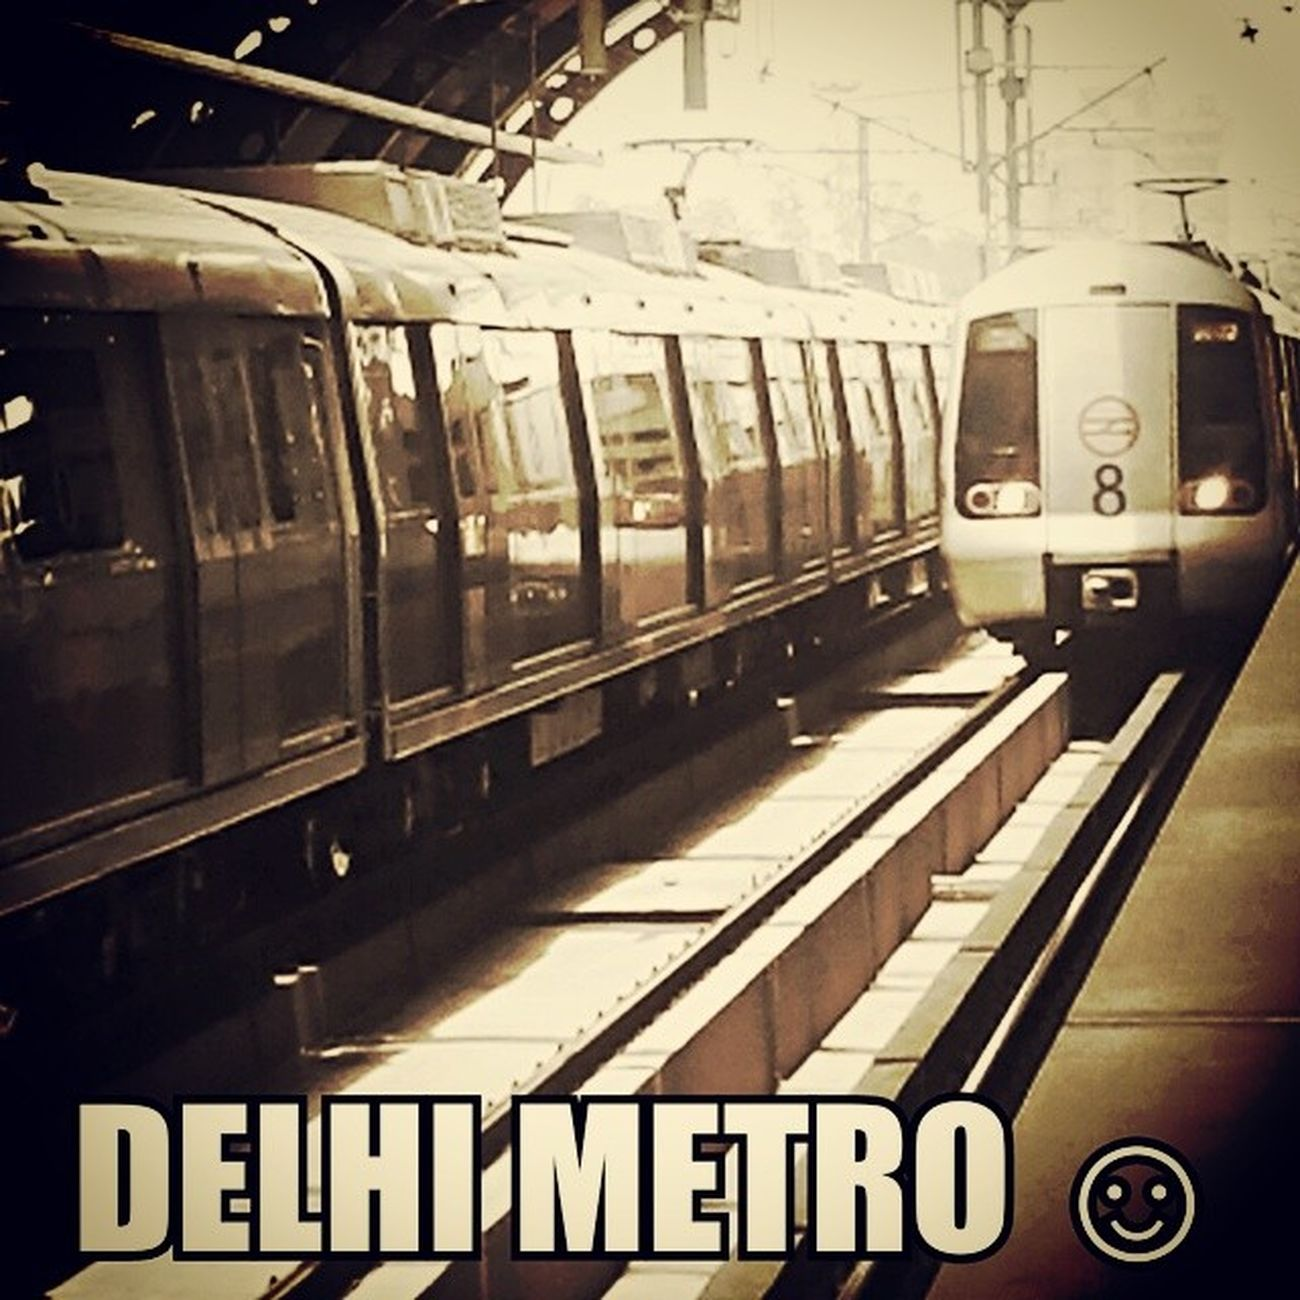 My Click Lumia Coolpics Delhi Metro Enjoyed Delhi Very Hot now Return To mumbai Back To Work n Excited To See Mumbai Metro ☺?